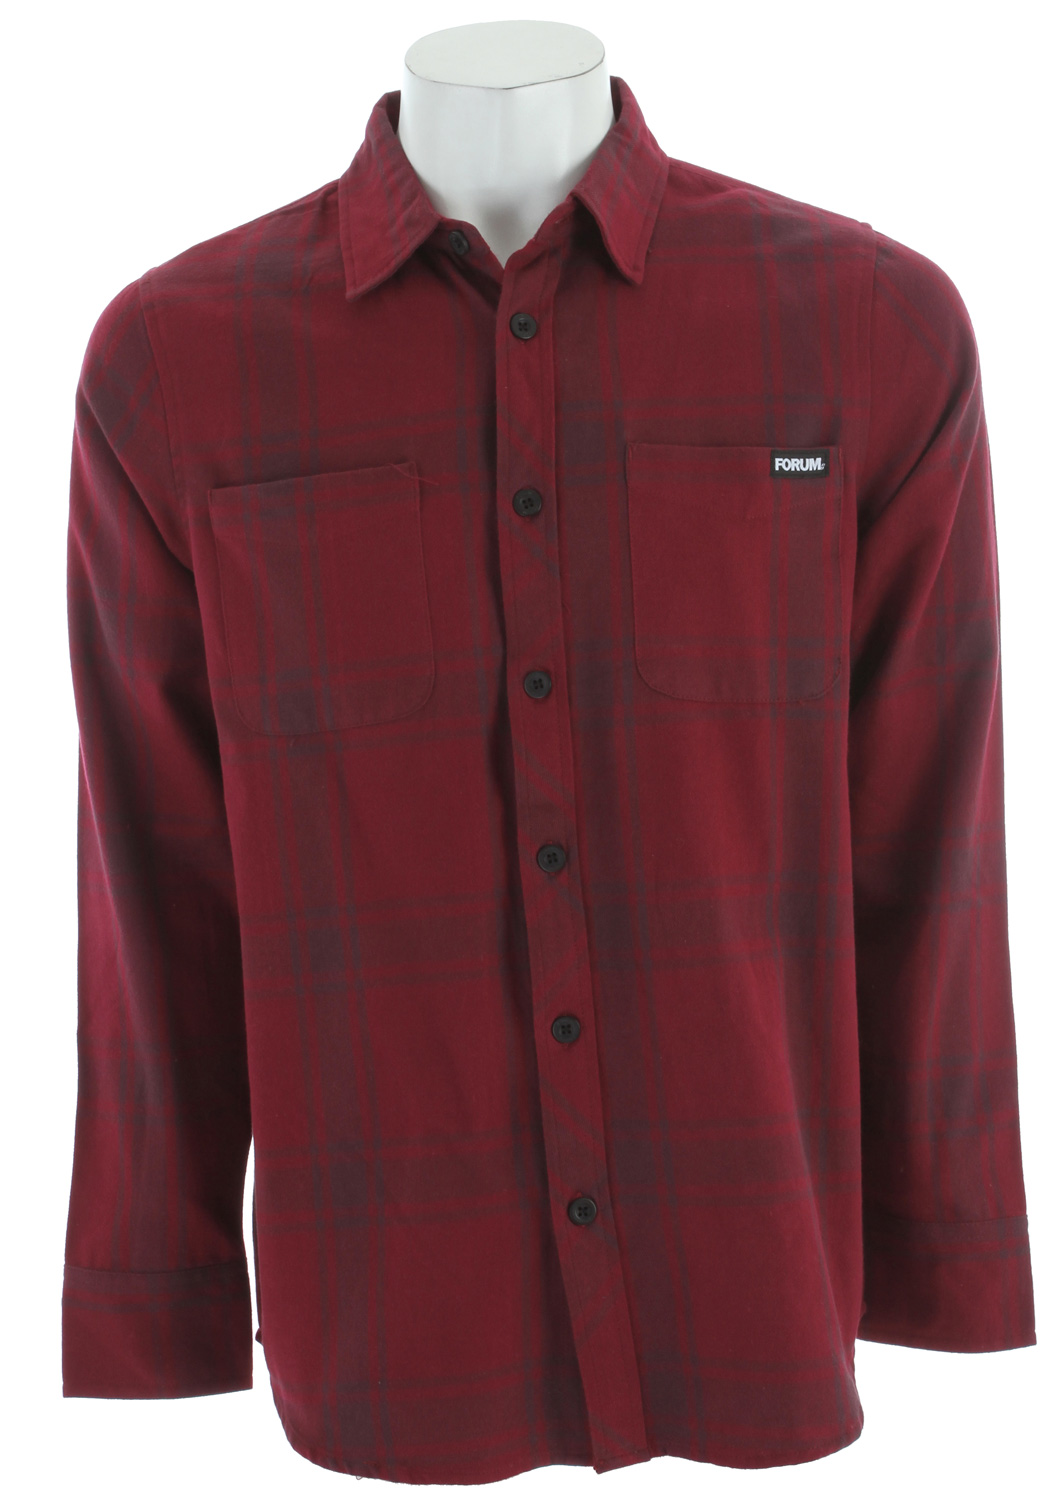 Forum Yokel Flannel Ron Burgundy - $18.95